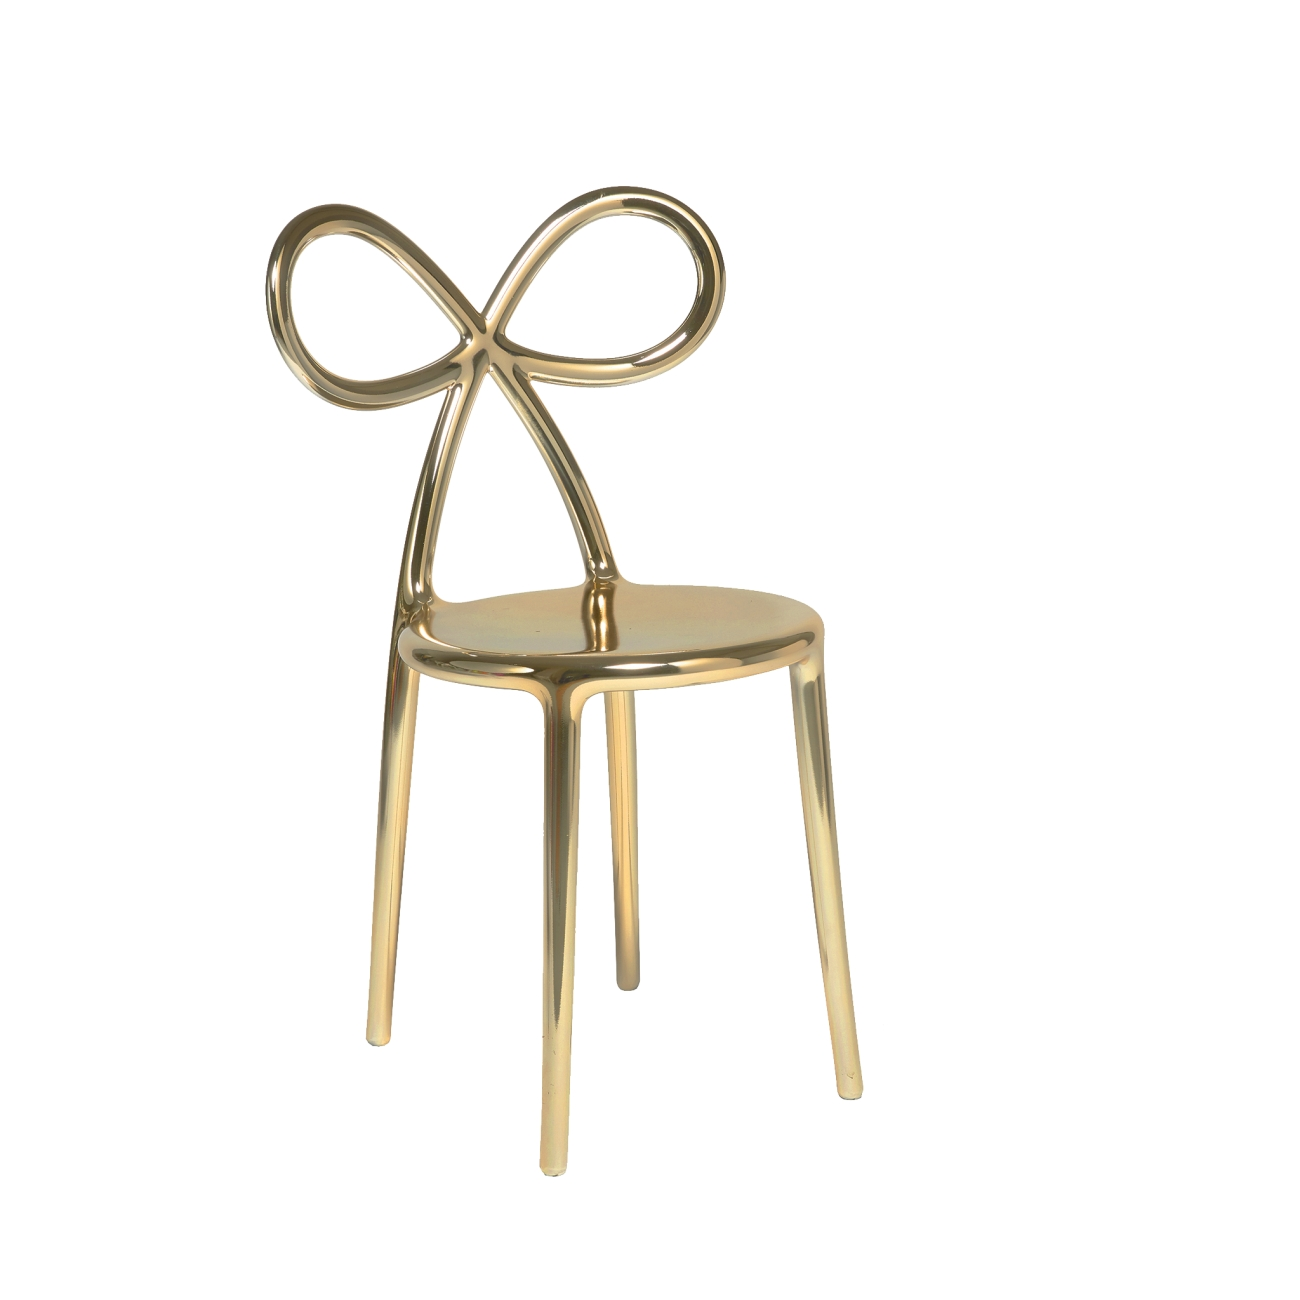 QEEBOO RIBBON CHAIR METAL FINISH SET GOLD